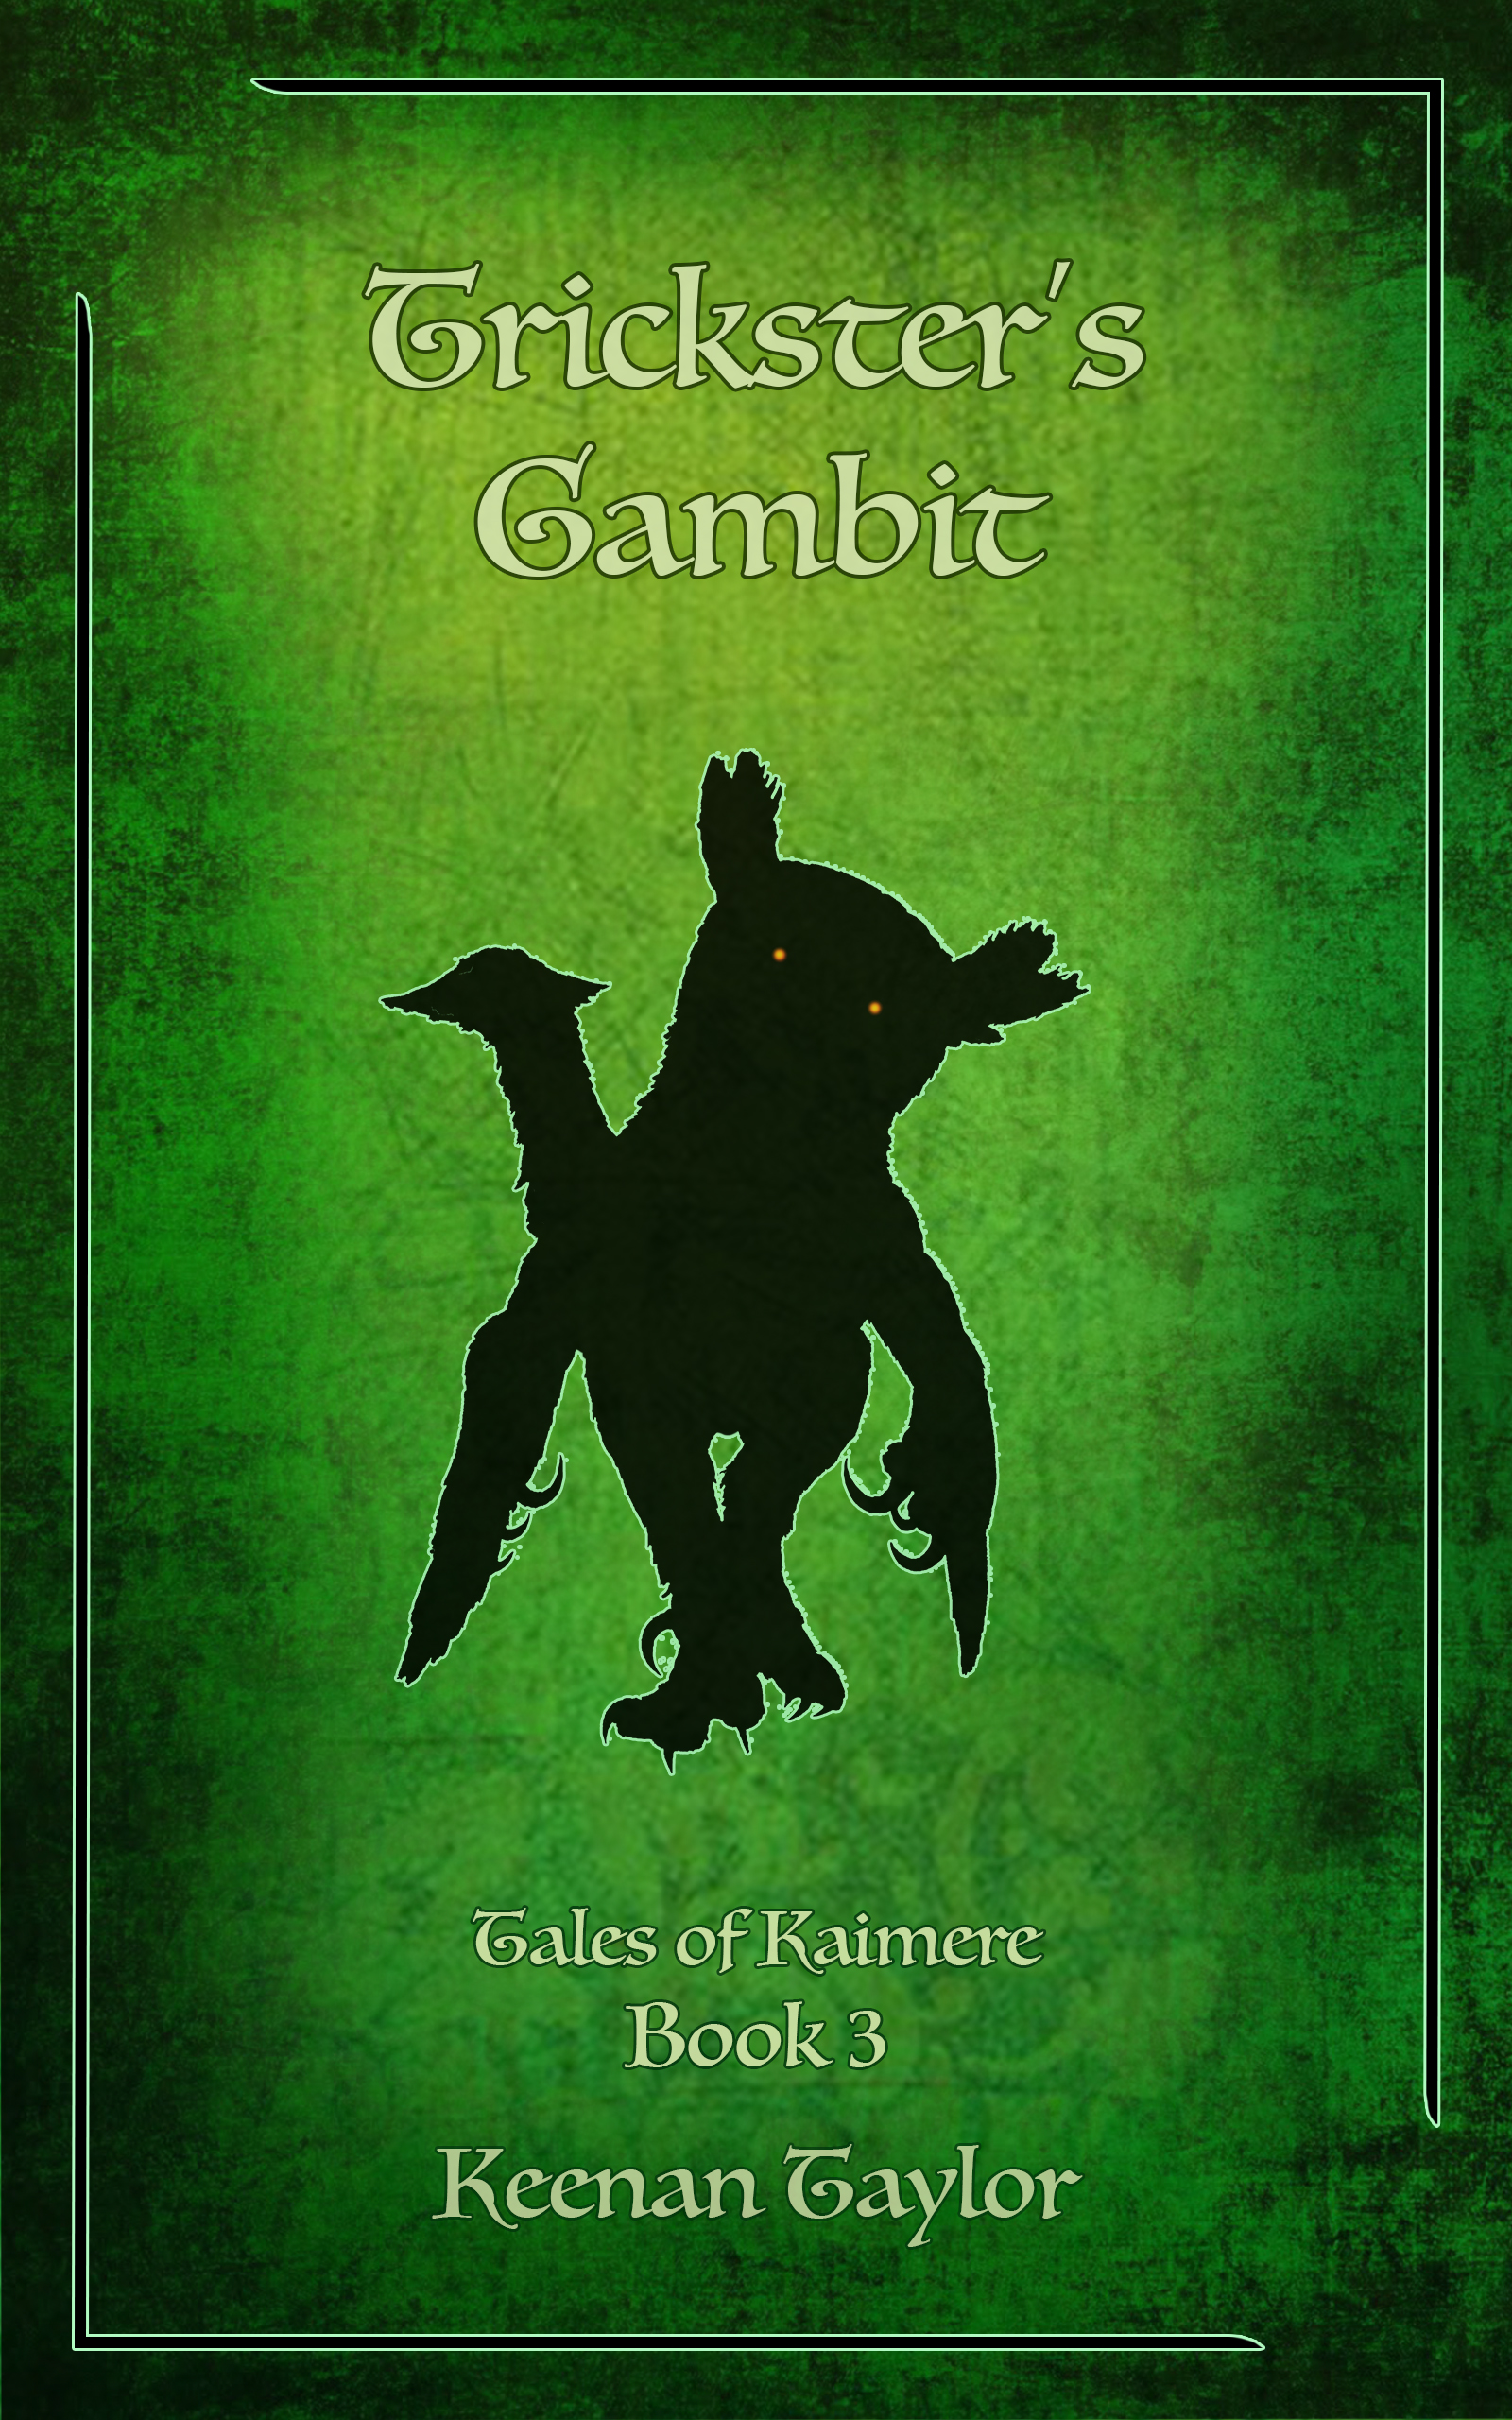 """""""Trickster's Gambit, the third instalment in the Tales of Kaimere short story collection, takes readers to the cold rainforests of Pakardia. Ja'Kosi is a young storyteller. She has been accused of murder, but as there are no witnesses, she must endure three days alone in the forest. If Ja'Kosi survives, the spirits have judged her innocent. Should she die, her guilt is considered proven. Although Ja'Kosi thinks there is little truth to the stories of woodland spirits and twisted demons, three days is a long time to be alone with nothing but yourself and a few stories…"""""""